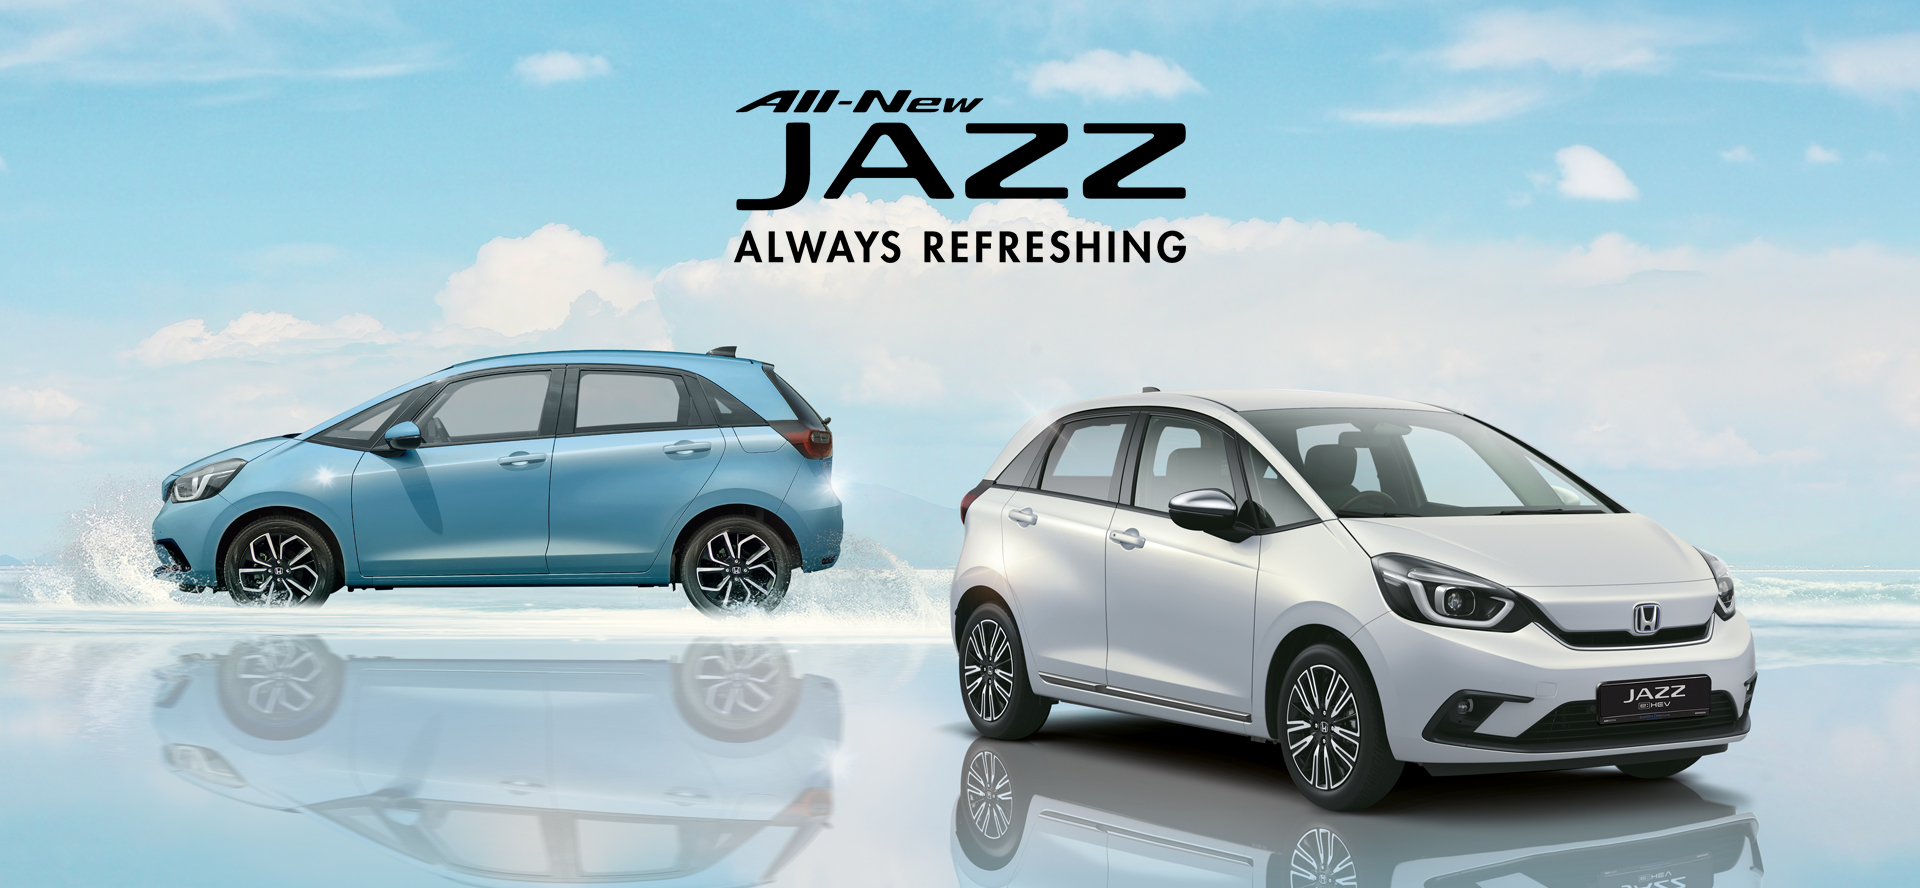 All-New_Jazz_Model_Page_Banner_-_1920x888px Honda All-New Jazz